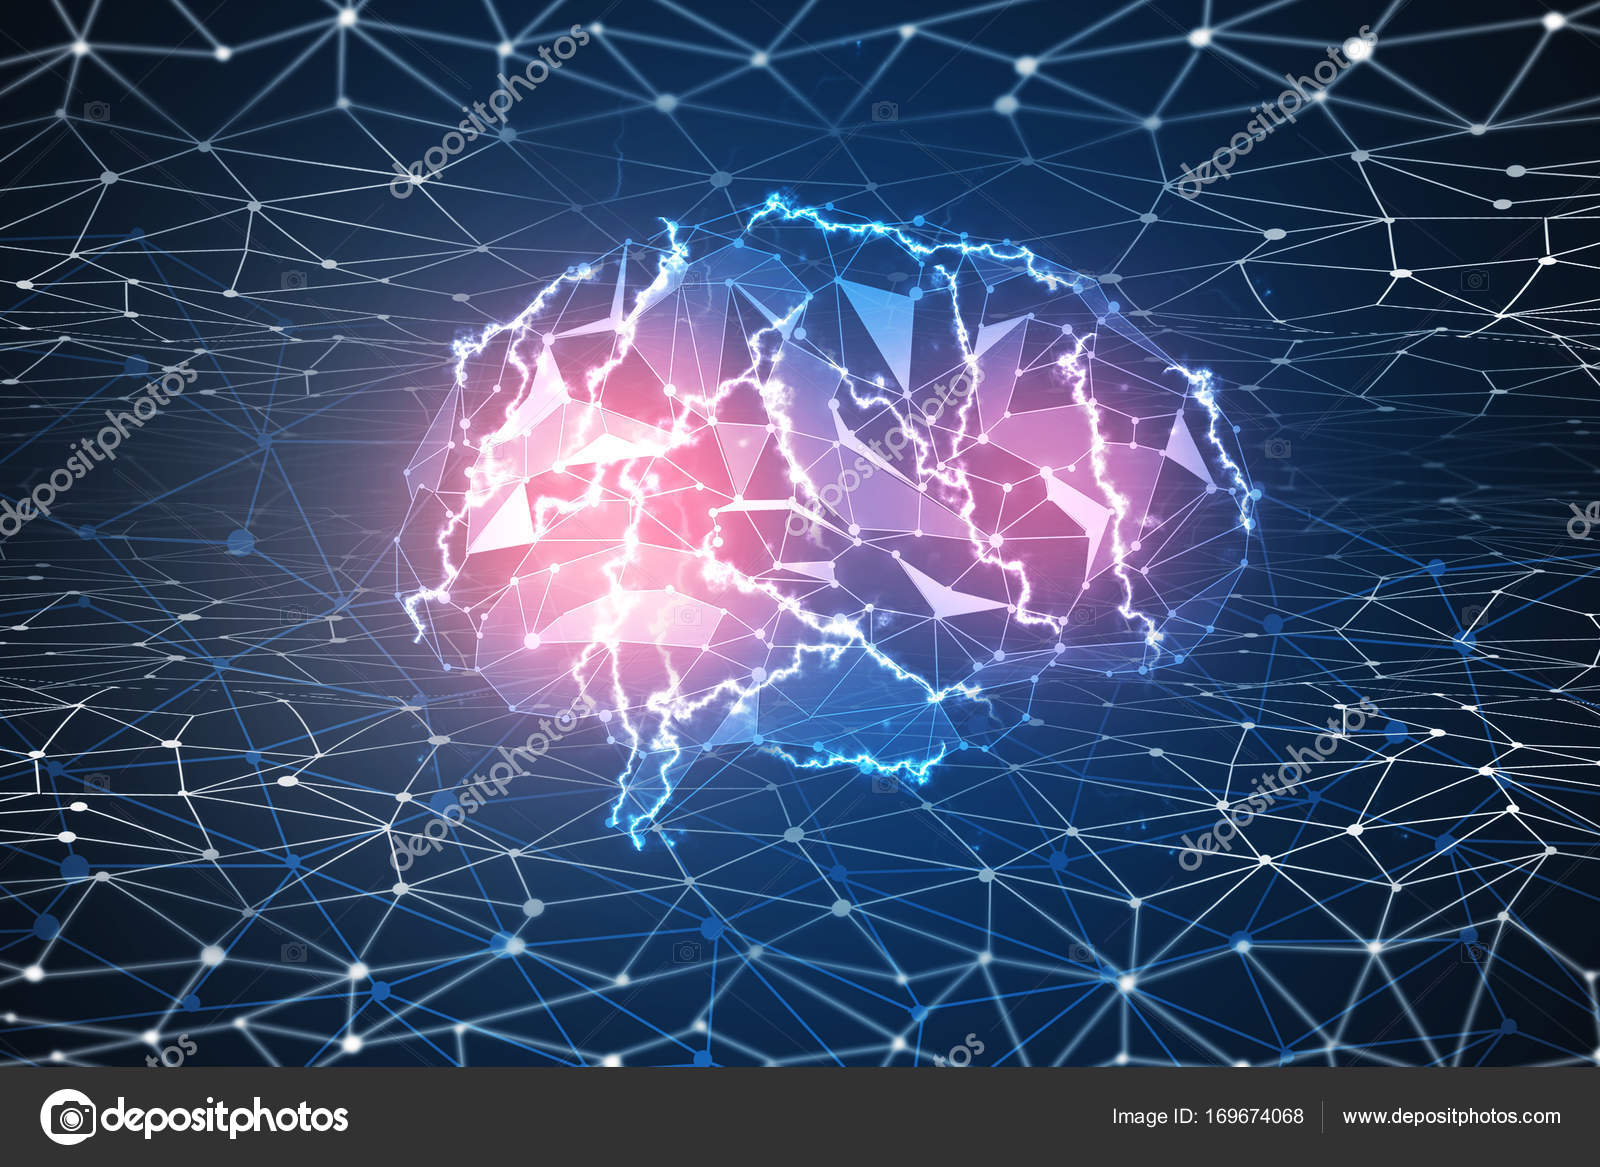 Digital brain wallpaper stock photo peshkova 169674068 - Brain wallpaper 3d ...